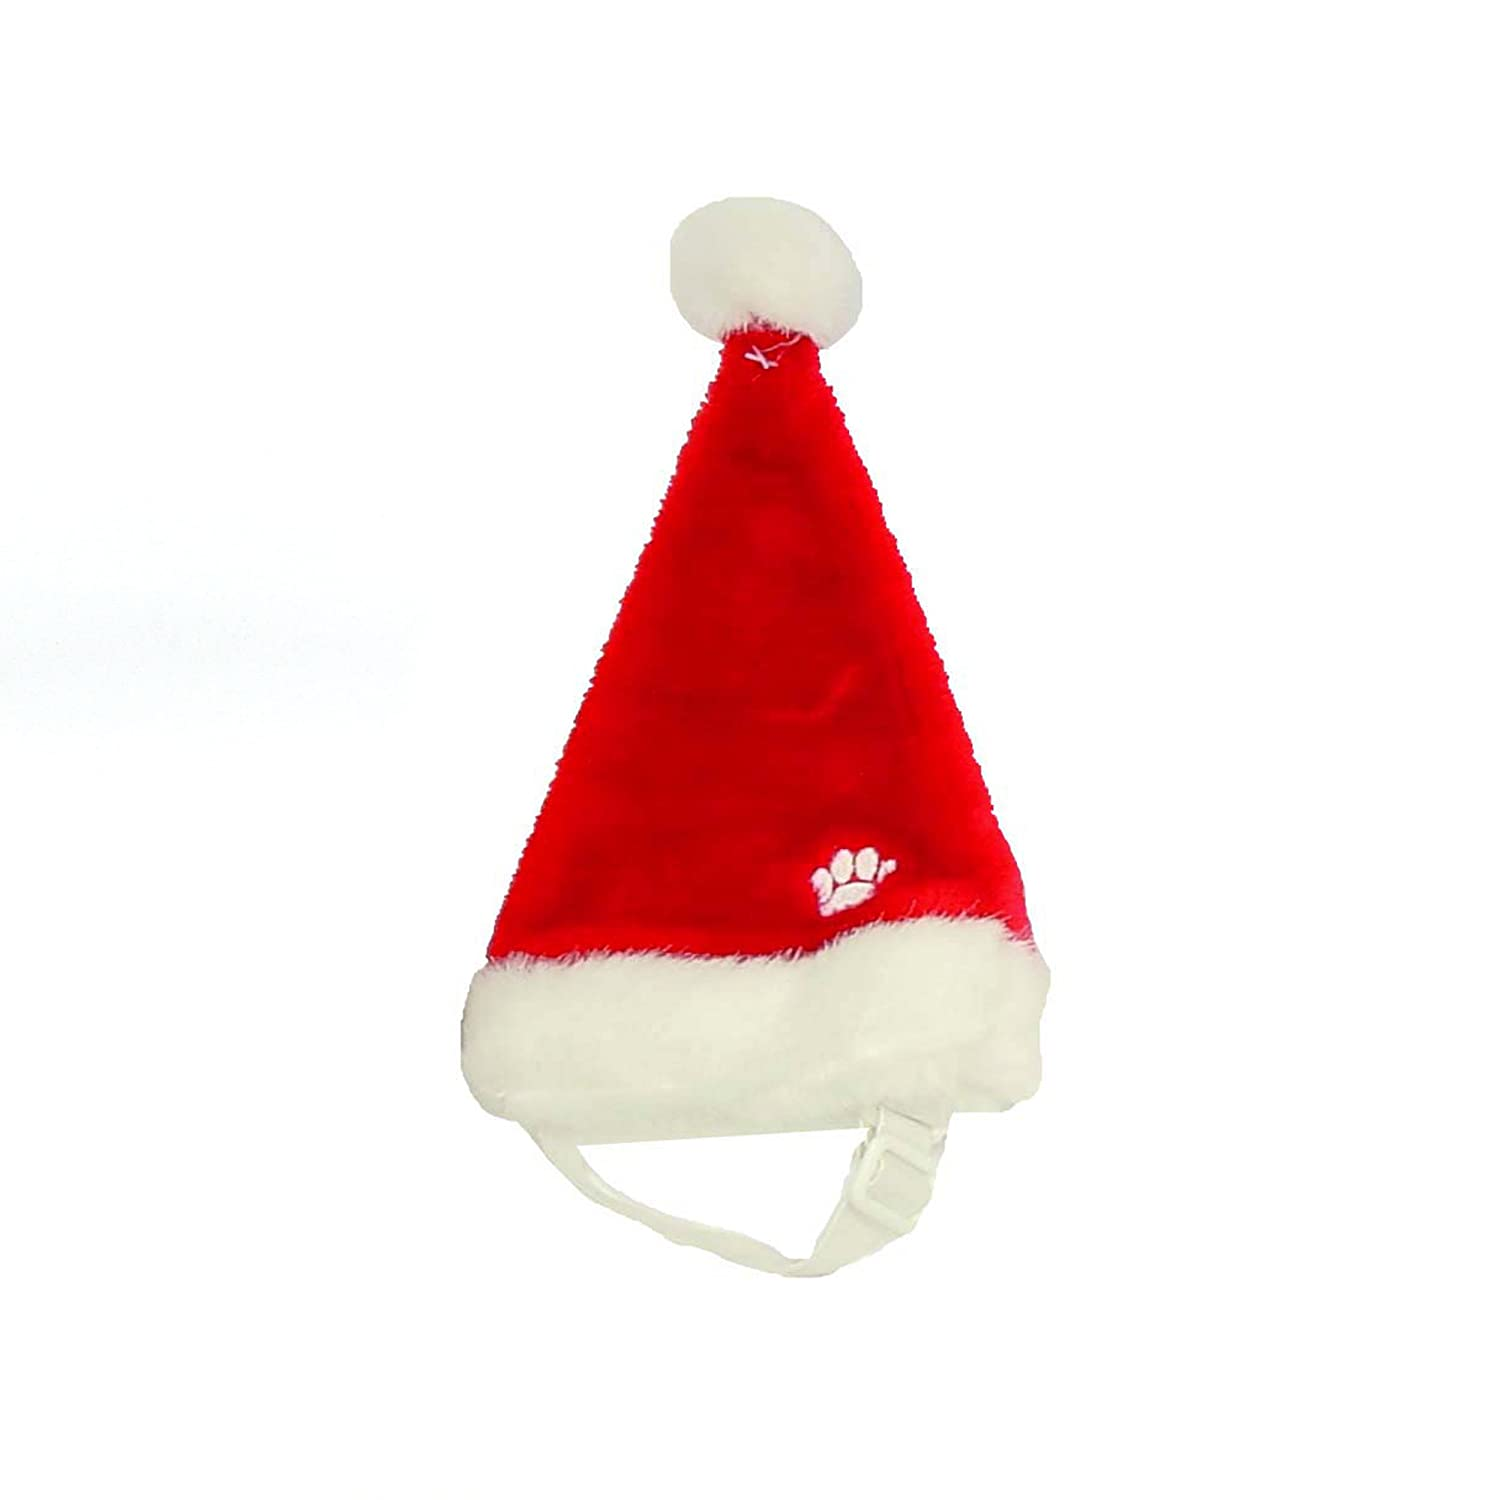 Outward Hound Dog Santa Hat Holiday and Christmas Pet Accessory, Red Small Kyjen Company 30038